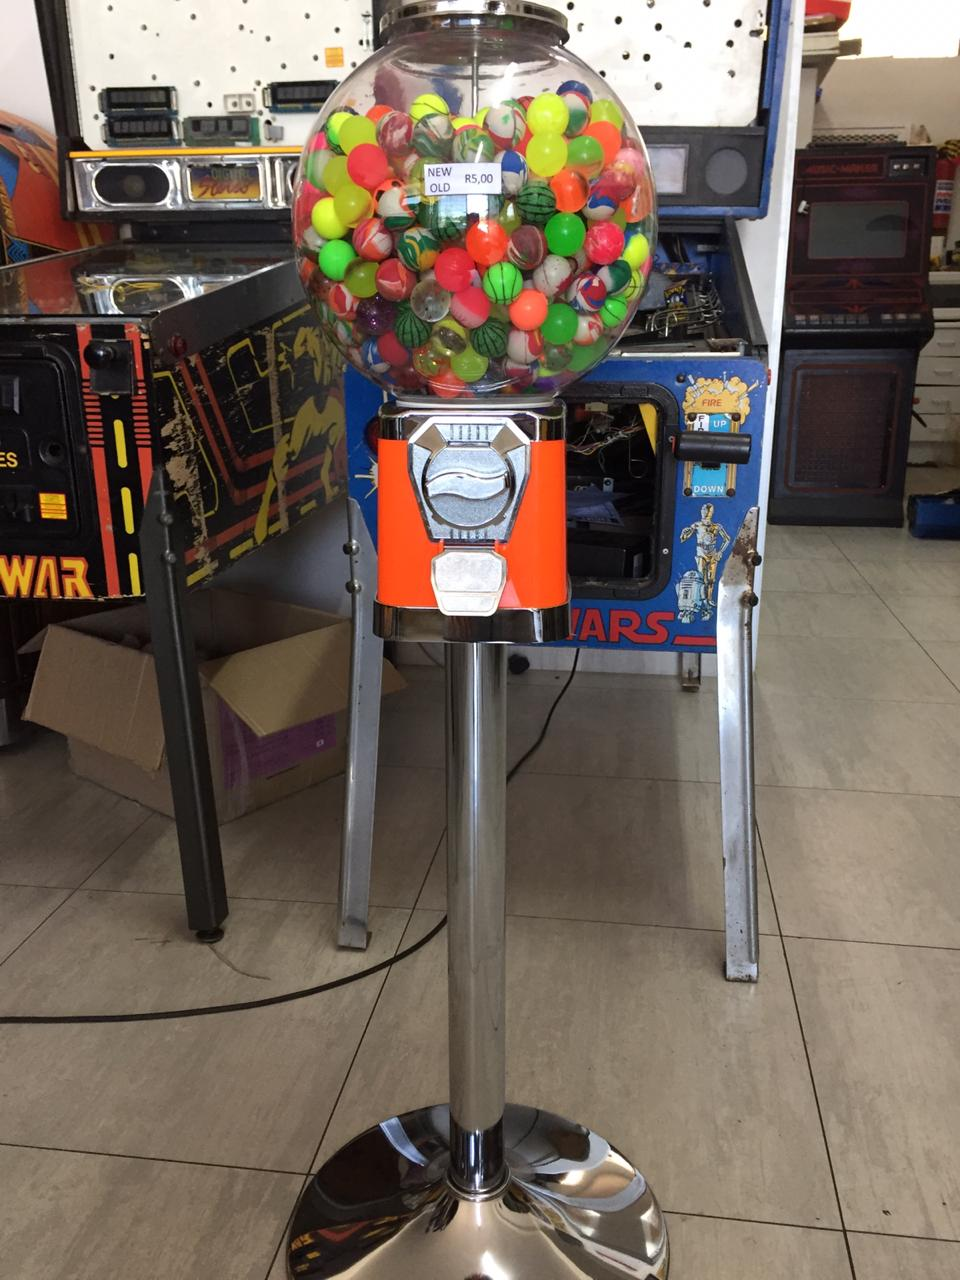 Bouncy Ball Vending Machine for sale, NEW